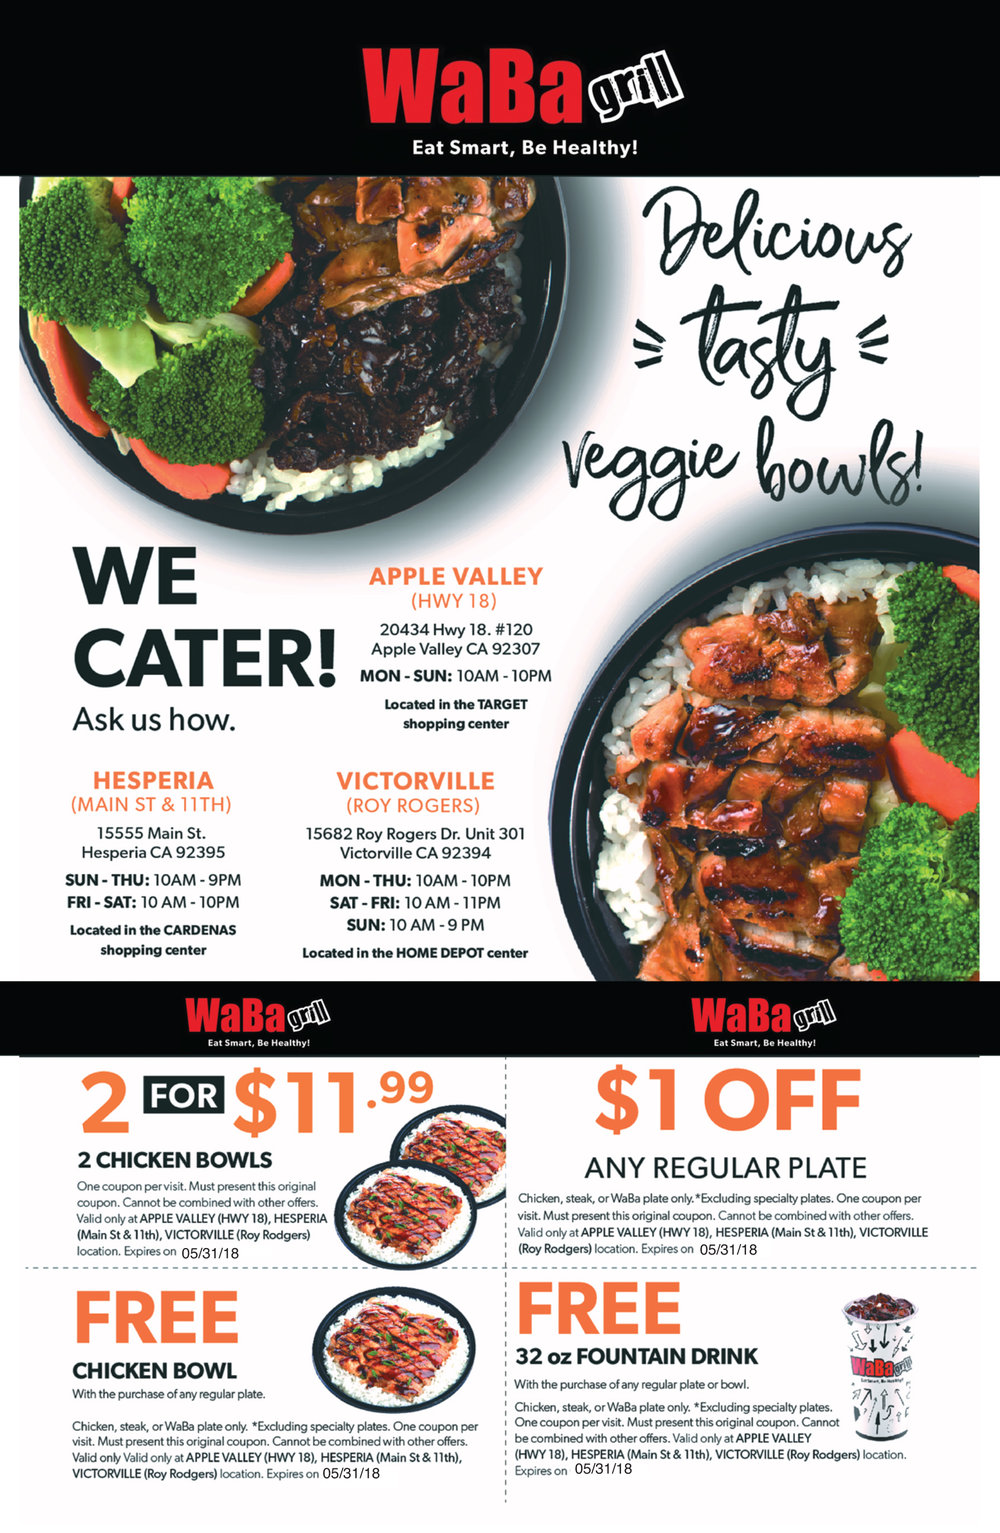 """WABA GRILL COUPONS.FREE CHICKEN BOWL, 50% OFF ANY PLATE, FREE AVOCADO, FREE SALAD TRAY, FREE DRINK, 10% OFF.    At WaBa Grill, we strive to serve the best possible grilled fusion menu items using only quality ingredients. We use fruits and vegetables to enhance the flavor of our amazing """"WaBa"""" sauce. We serve boneless, skinless, fat-trimmed chicken, and other high quality meat. Our salads are prepared shortly before serving, our veggies are lightly steamed to perfection, and all meats are charbroiled. Nothing is fried and no oil is used in the cooking process. You will enjoy the clean, low-fat, healthy entrees freshly prepared to order that appeal to your desire for tasty food, served at """"on the go"""" speed.   No Oil Used in Cooking  Cooked Fresh to Order  Low Fat, Low Calories  Low Carb Options  High Protein  Fresh Vegetables  Absolutely Delicious!!  Our Mission & Vision  Mission Statements  WaBa Grill Franchise Corp. seeks to create premier choice quick service restaurant business model and comprehensive service for the franchisees serving health conscience, premier choice and high value quick service food to customers in an inviting atmosphere with satisfying experience in service.  Value Statements  Promote constructive partnership with franchisees to achieve leading quick service operations catering to customers seeking clean, inviting, and satisfying dining experience. Achieve ever-growing brand recognition with relentless investment on the merit of WaBa Grill menu.  Vision Statements  Become a leader in the best-value providers in quick service restaurant sector. Promote teriyaki menu as the America's premier choice quick service food menu item above and beyond hamburgers, hot dogs, tacos, burritos, and sandwiches. 2000 health conscience quick service food restaurants nationwide by year 2025."""